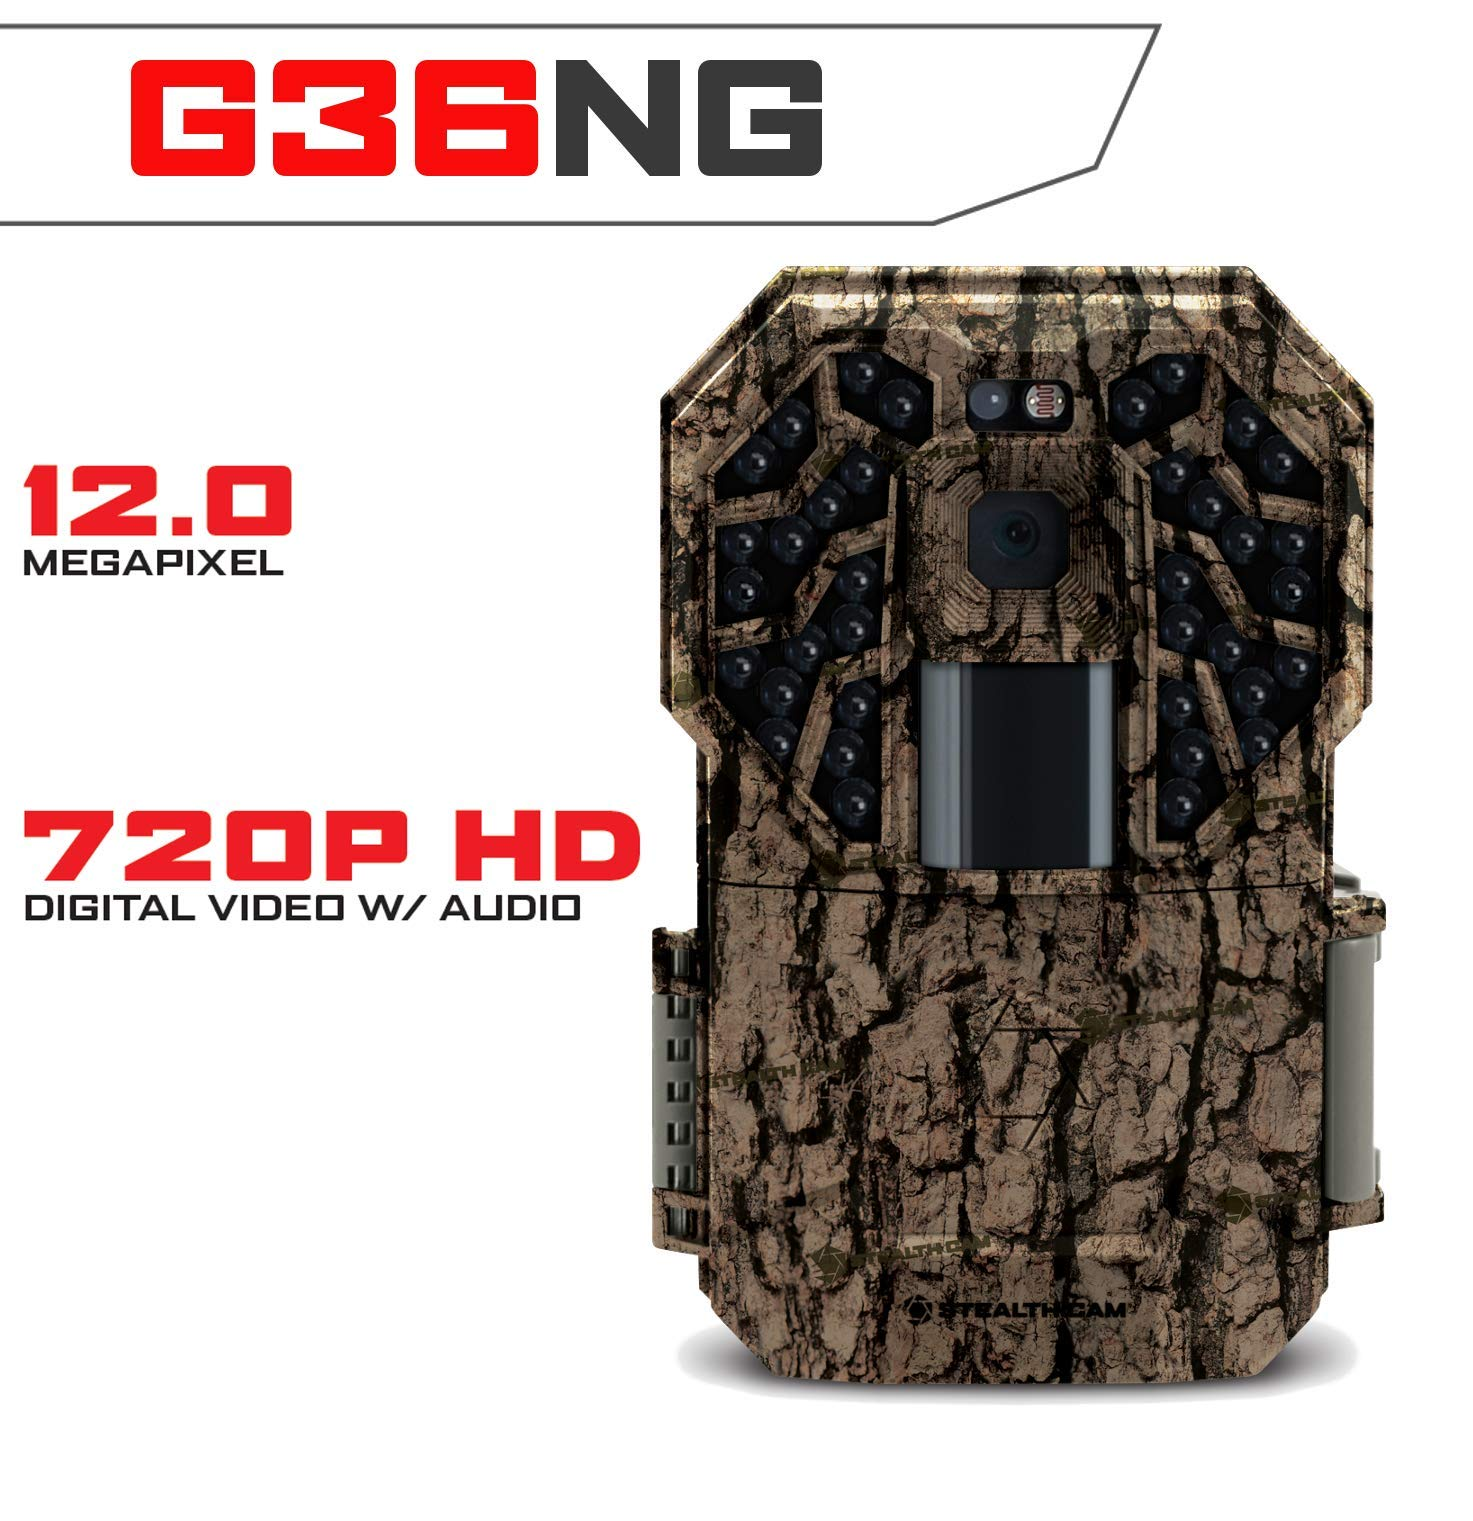 Stealth Cam STC-G36NG 12MP 36Ng Pro Brown Oak Camera